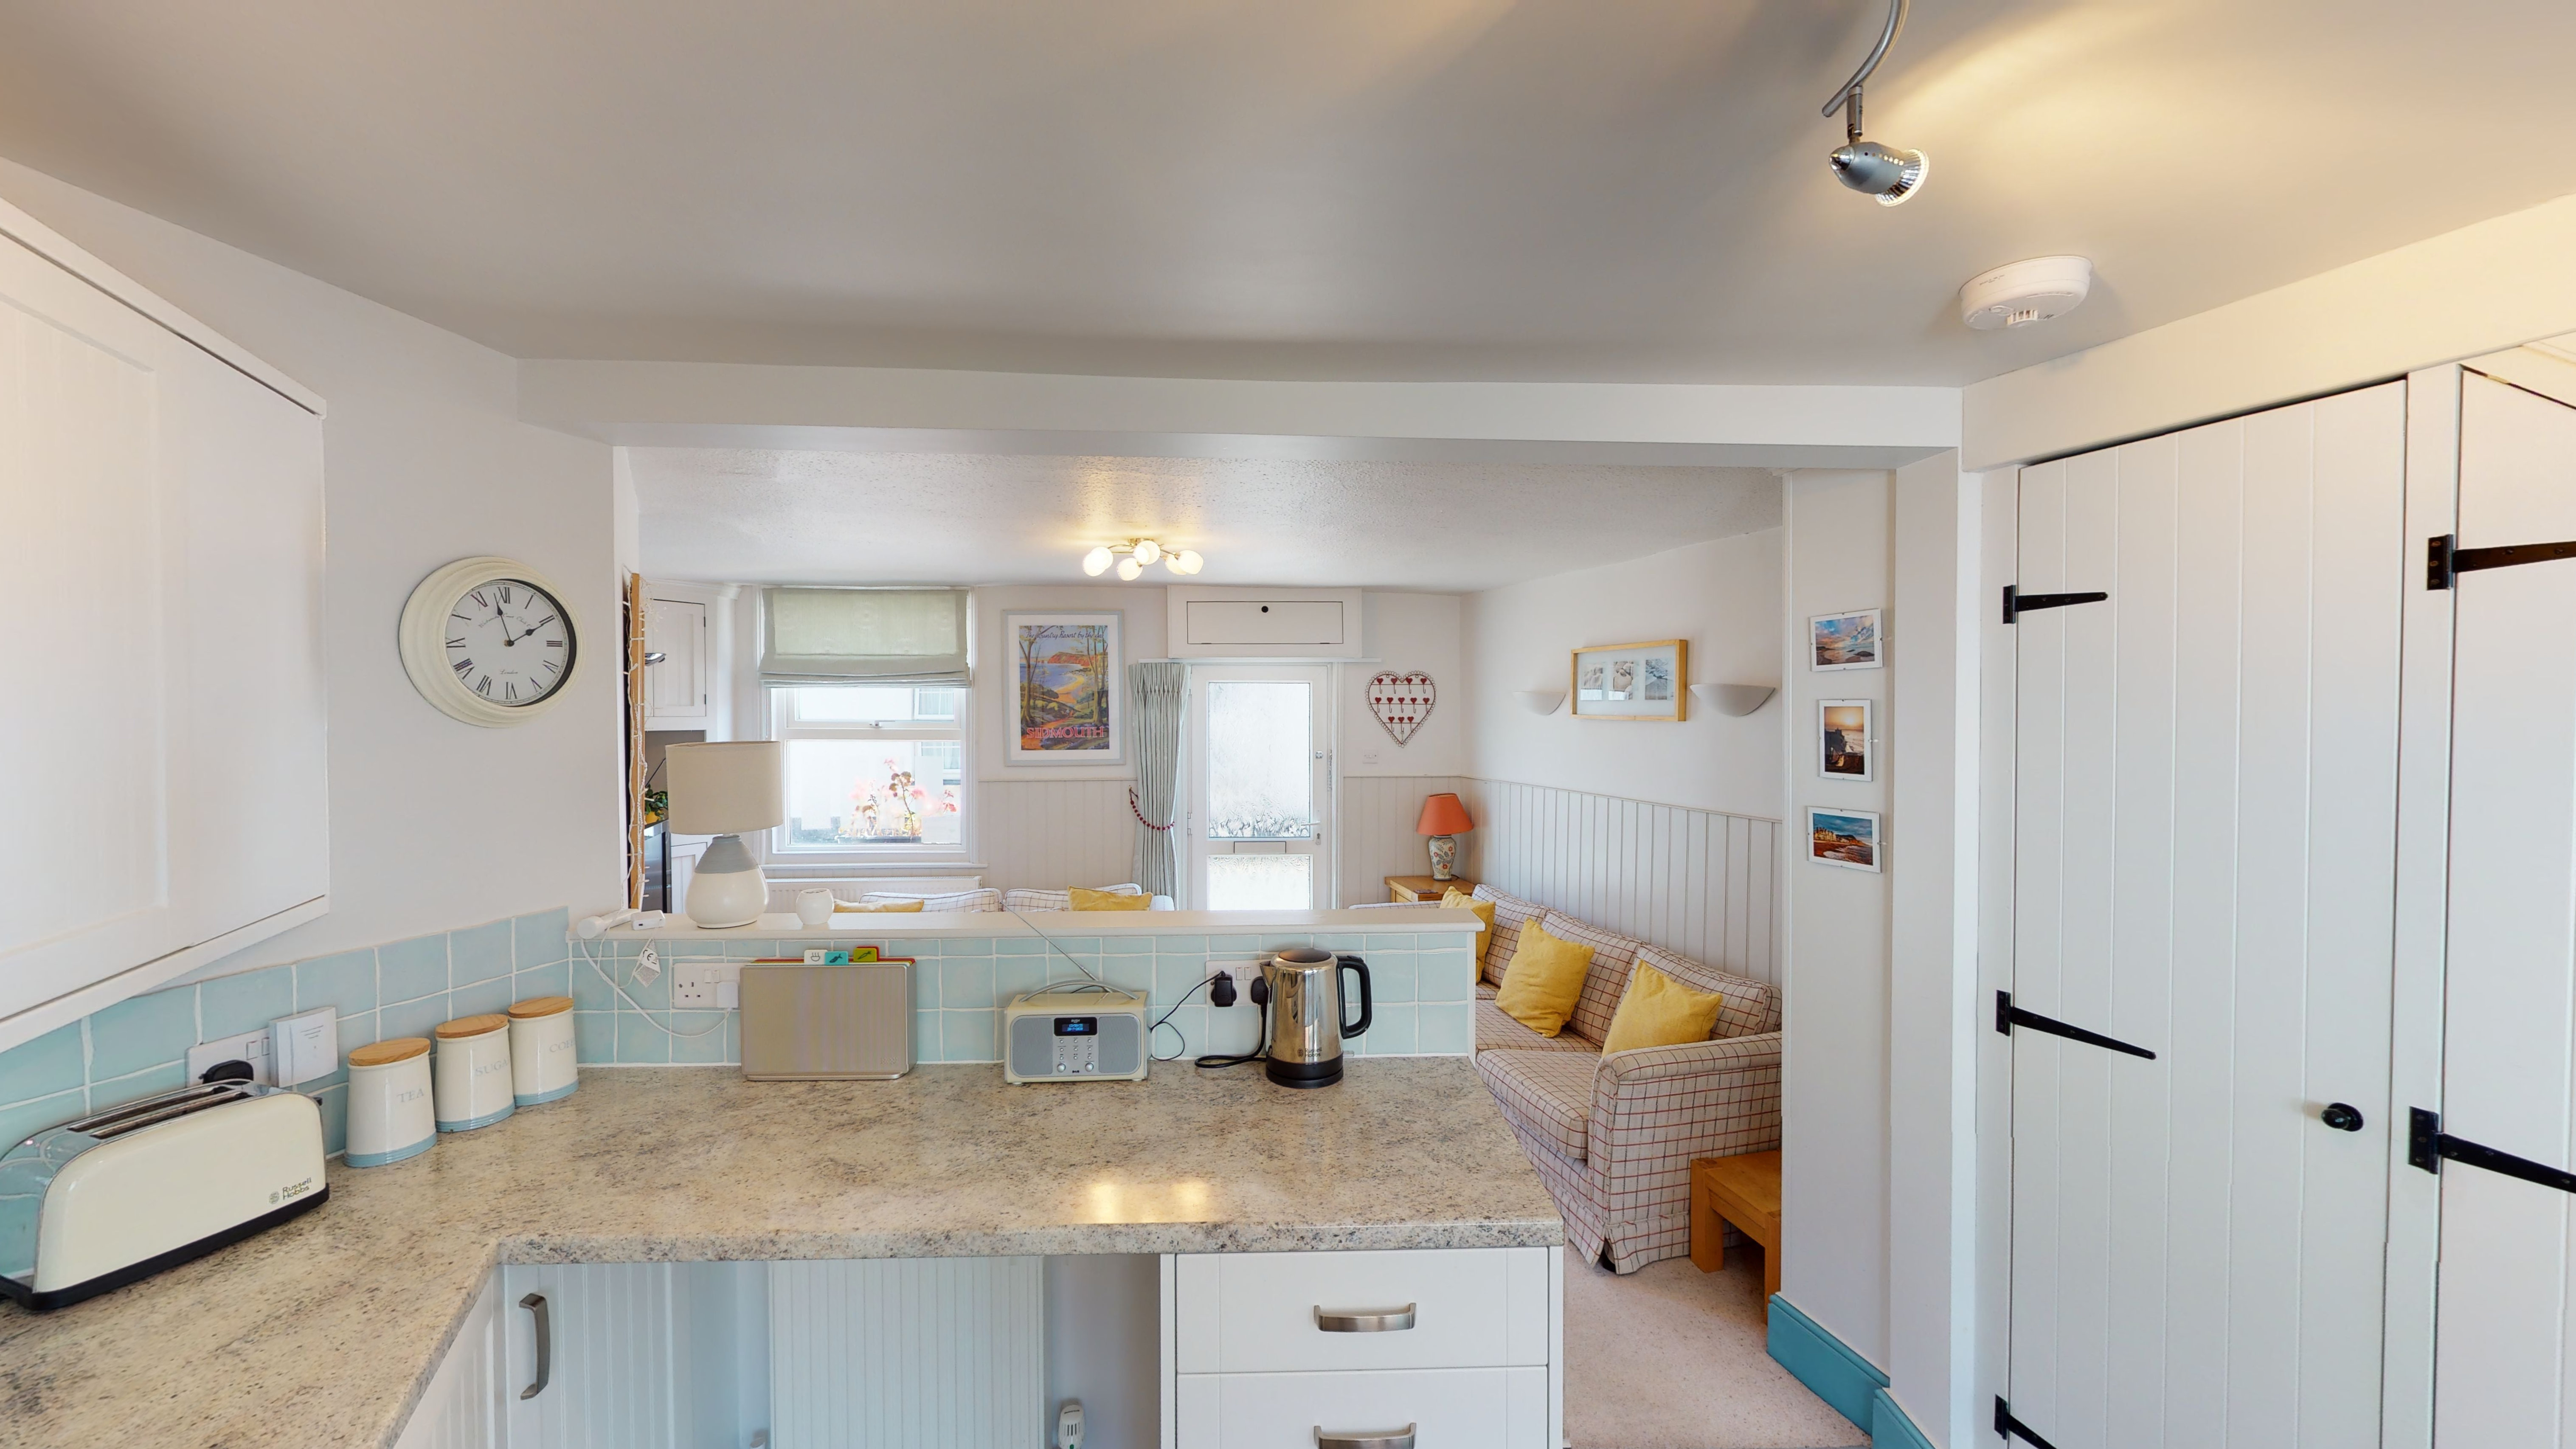 Seagull Cottage 07252020 114331